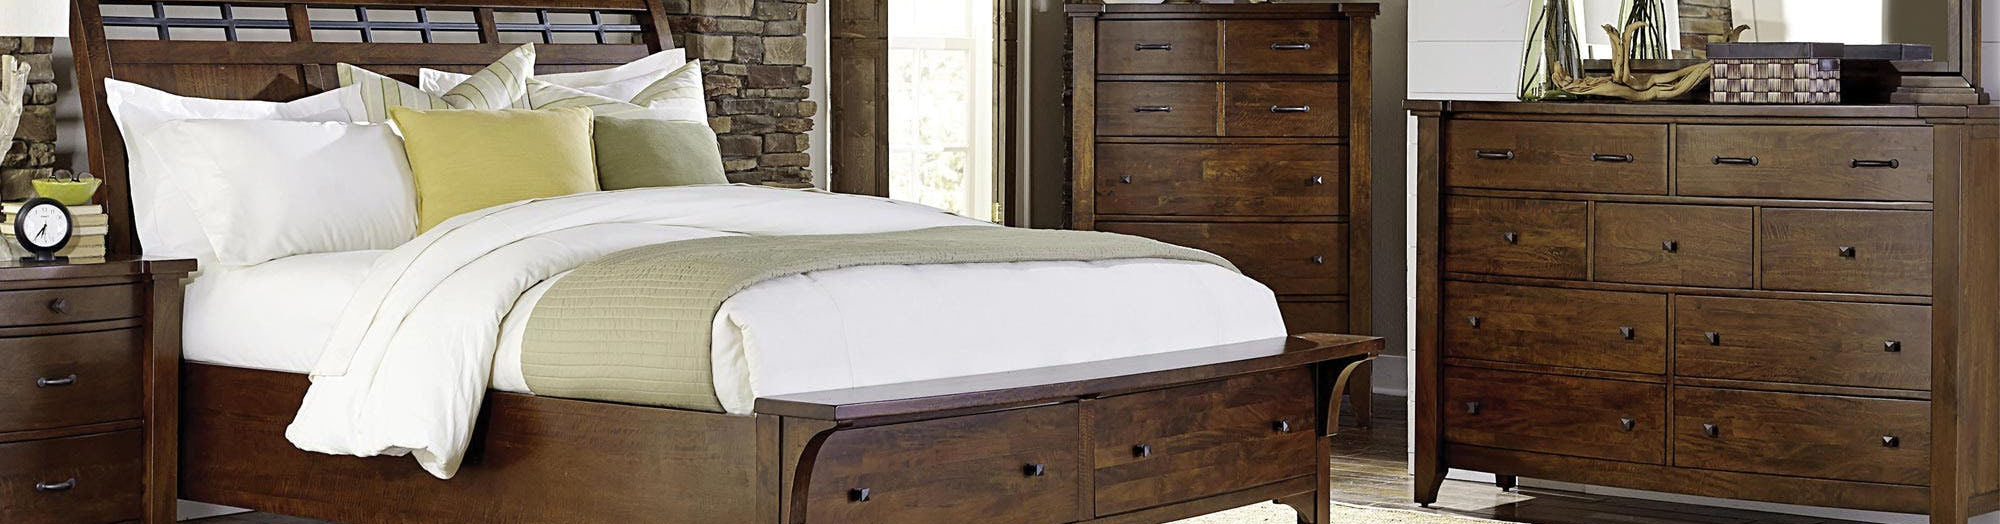 Master Bedroom - Furniture Fair | Cincinnati, Dayton ...